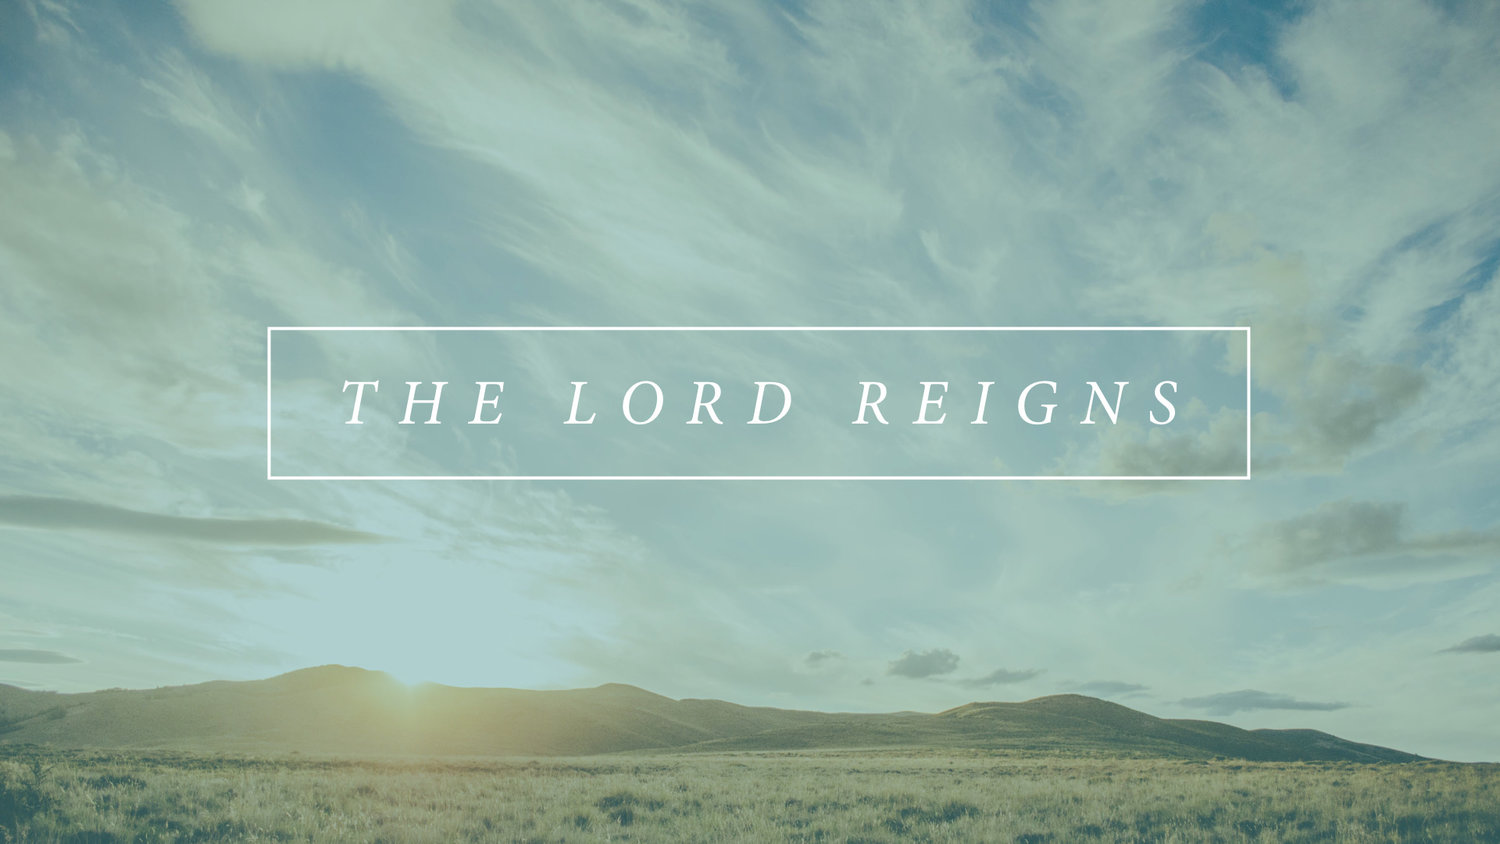 The+Lord+Reigns+slides.002.jpeg